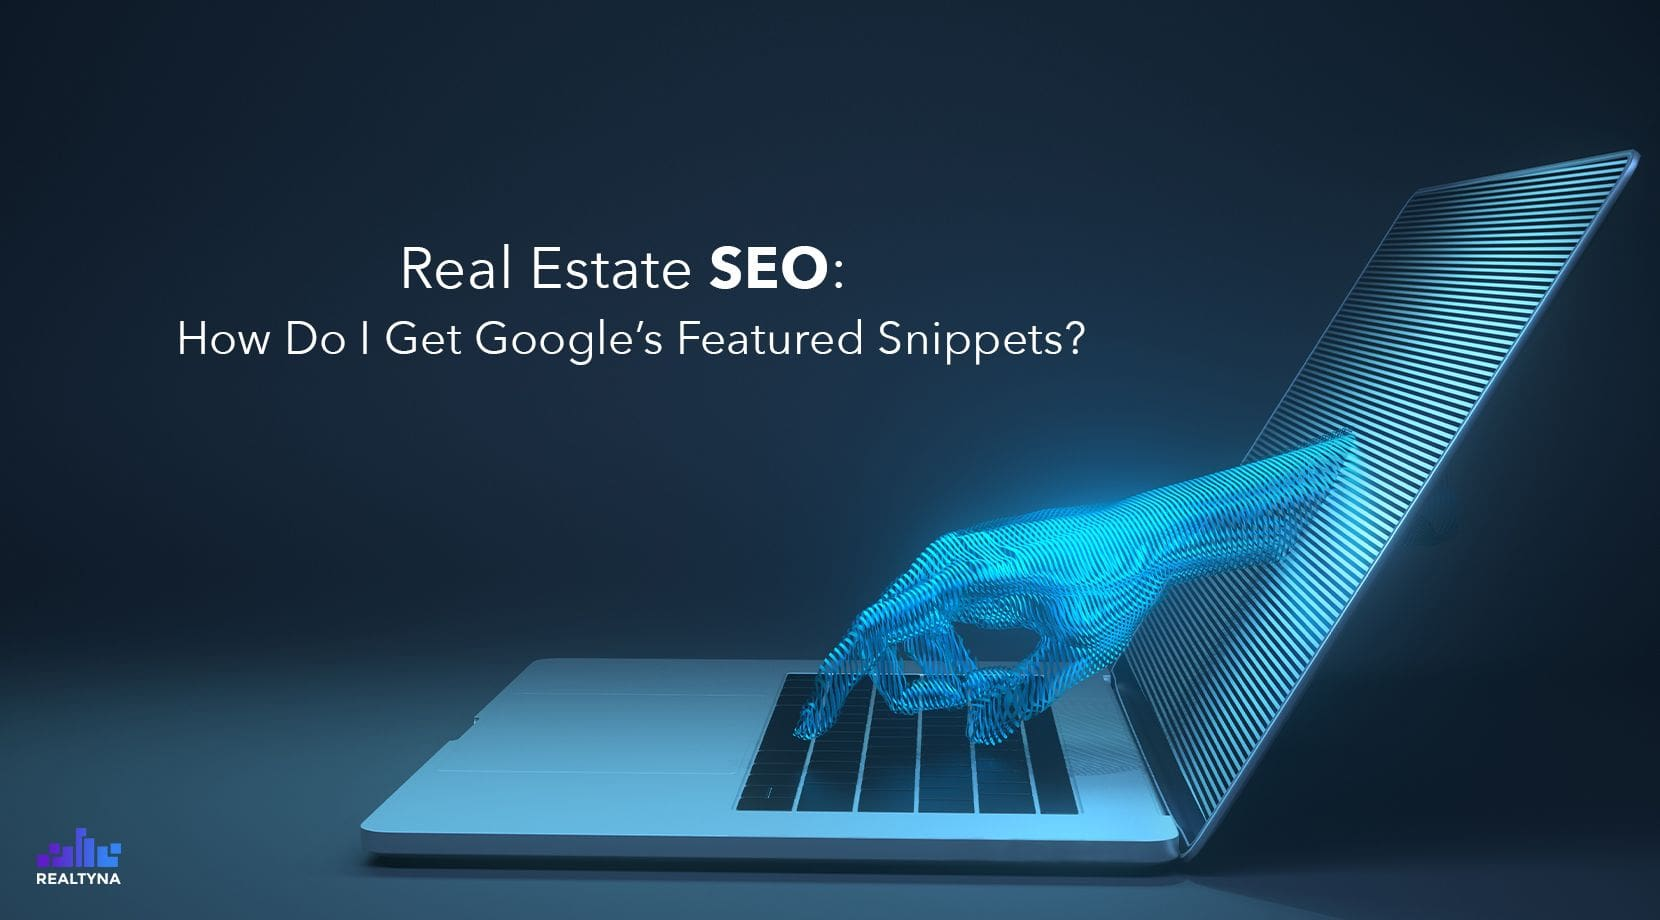 Real Estate SEO: How Do I Get Google's Featured Snippets?